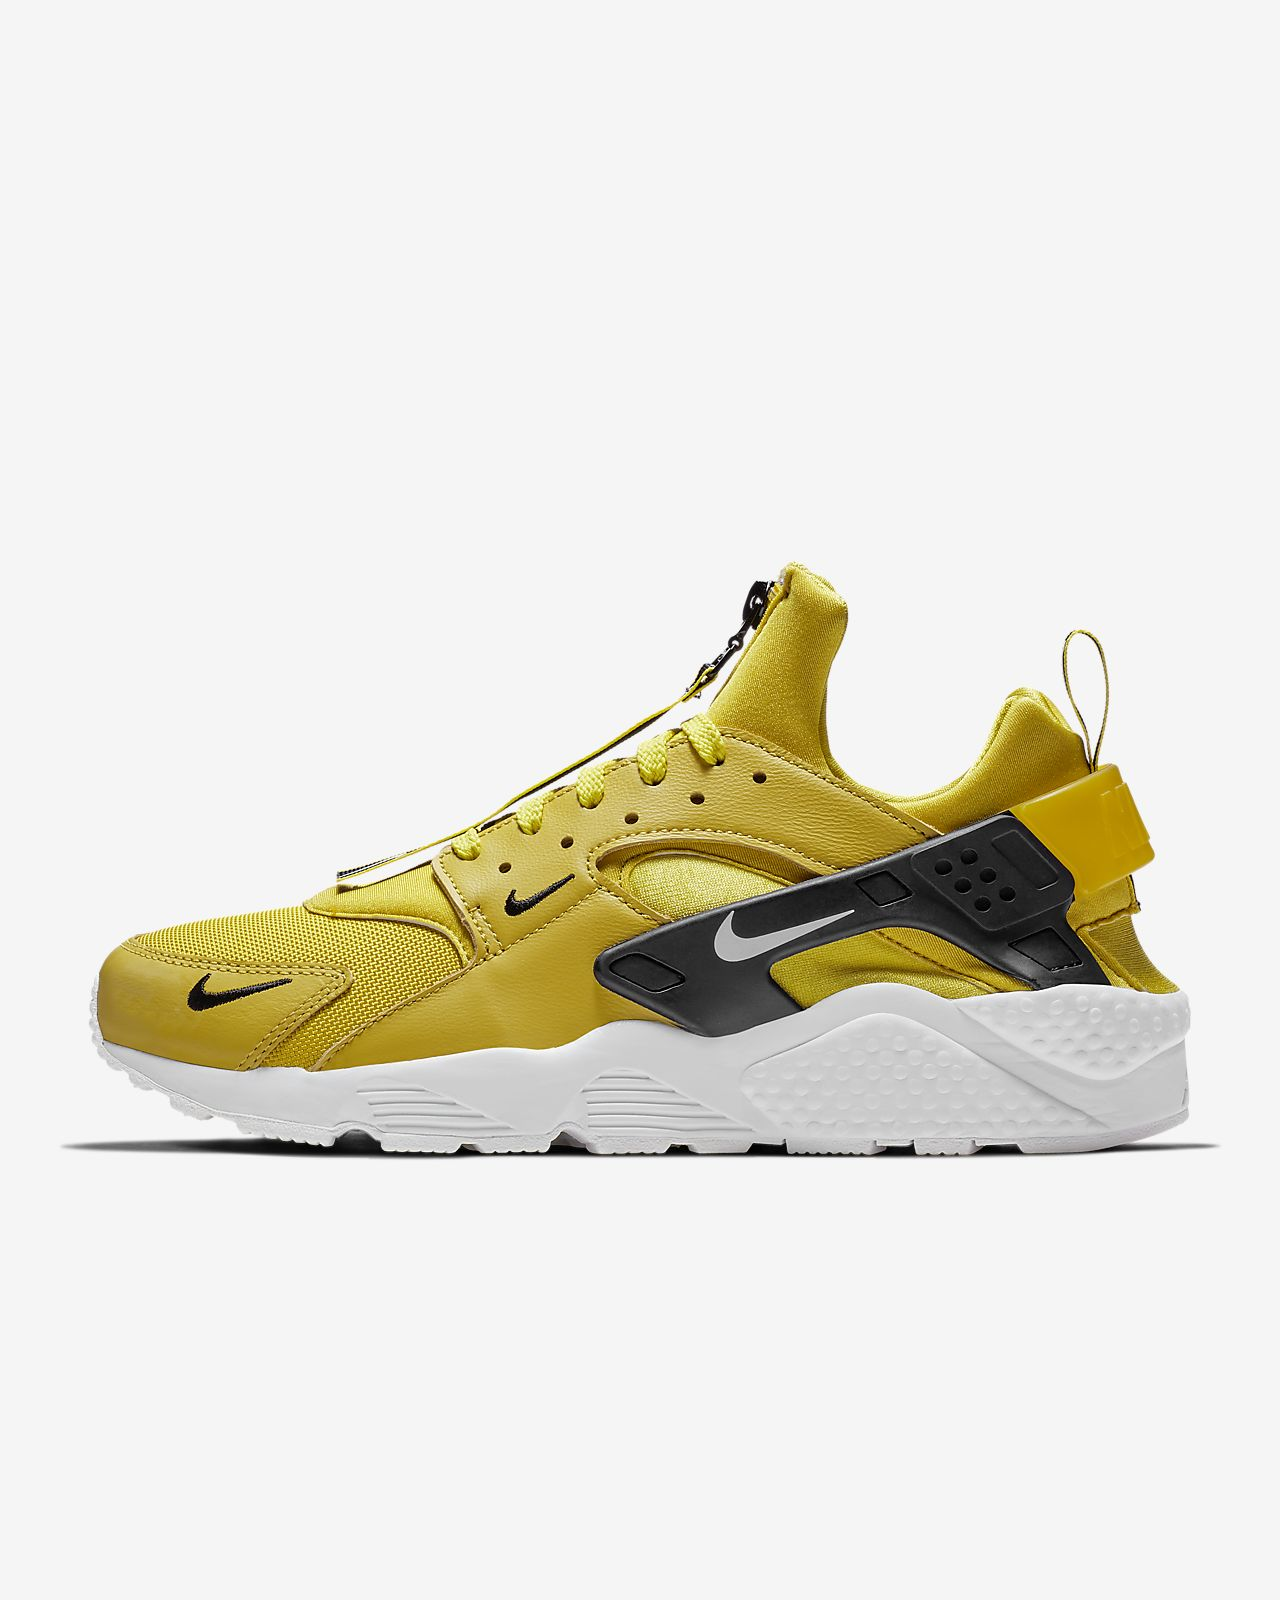 brand new 63e23 5cd89 ... Nike Air Huarache Run Premium Zip Men s Shoe